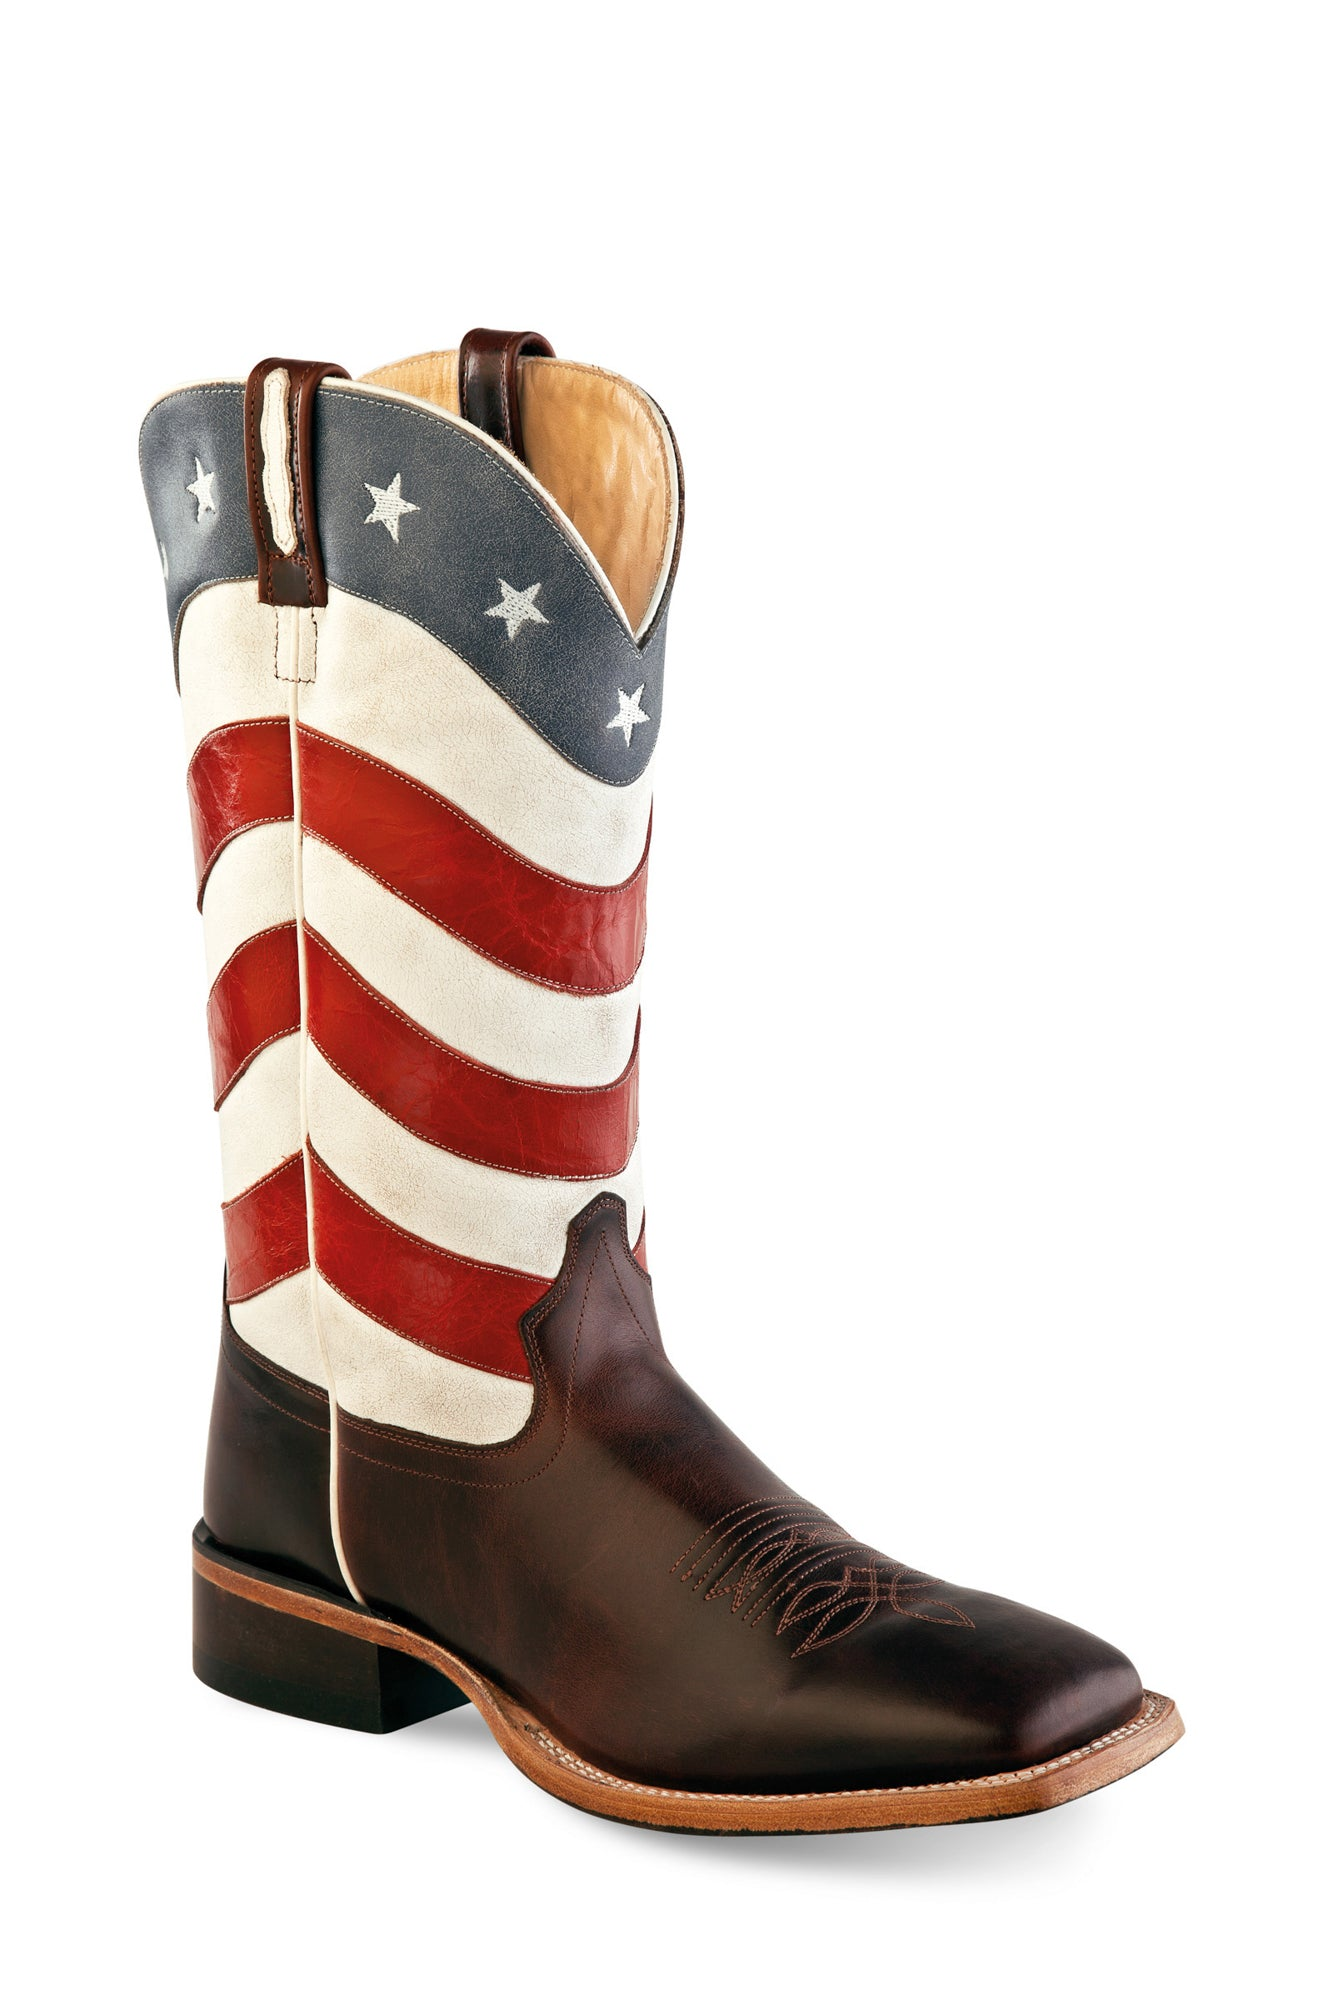 71d5582b34e Old West USA Flag Mens Leather 13in Western Cowboy Boots